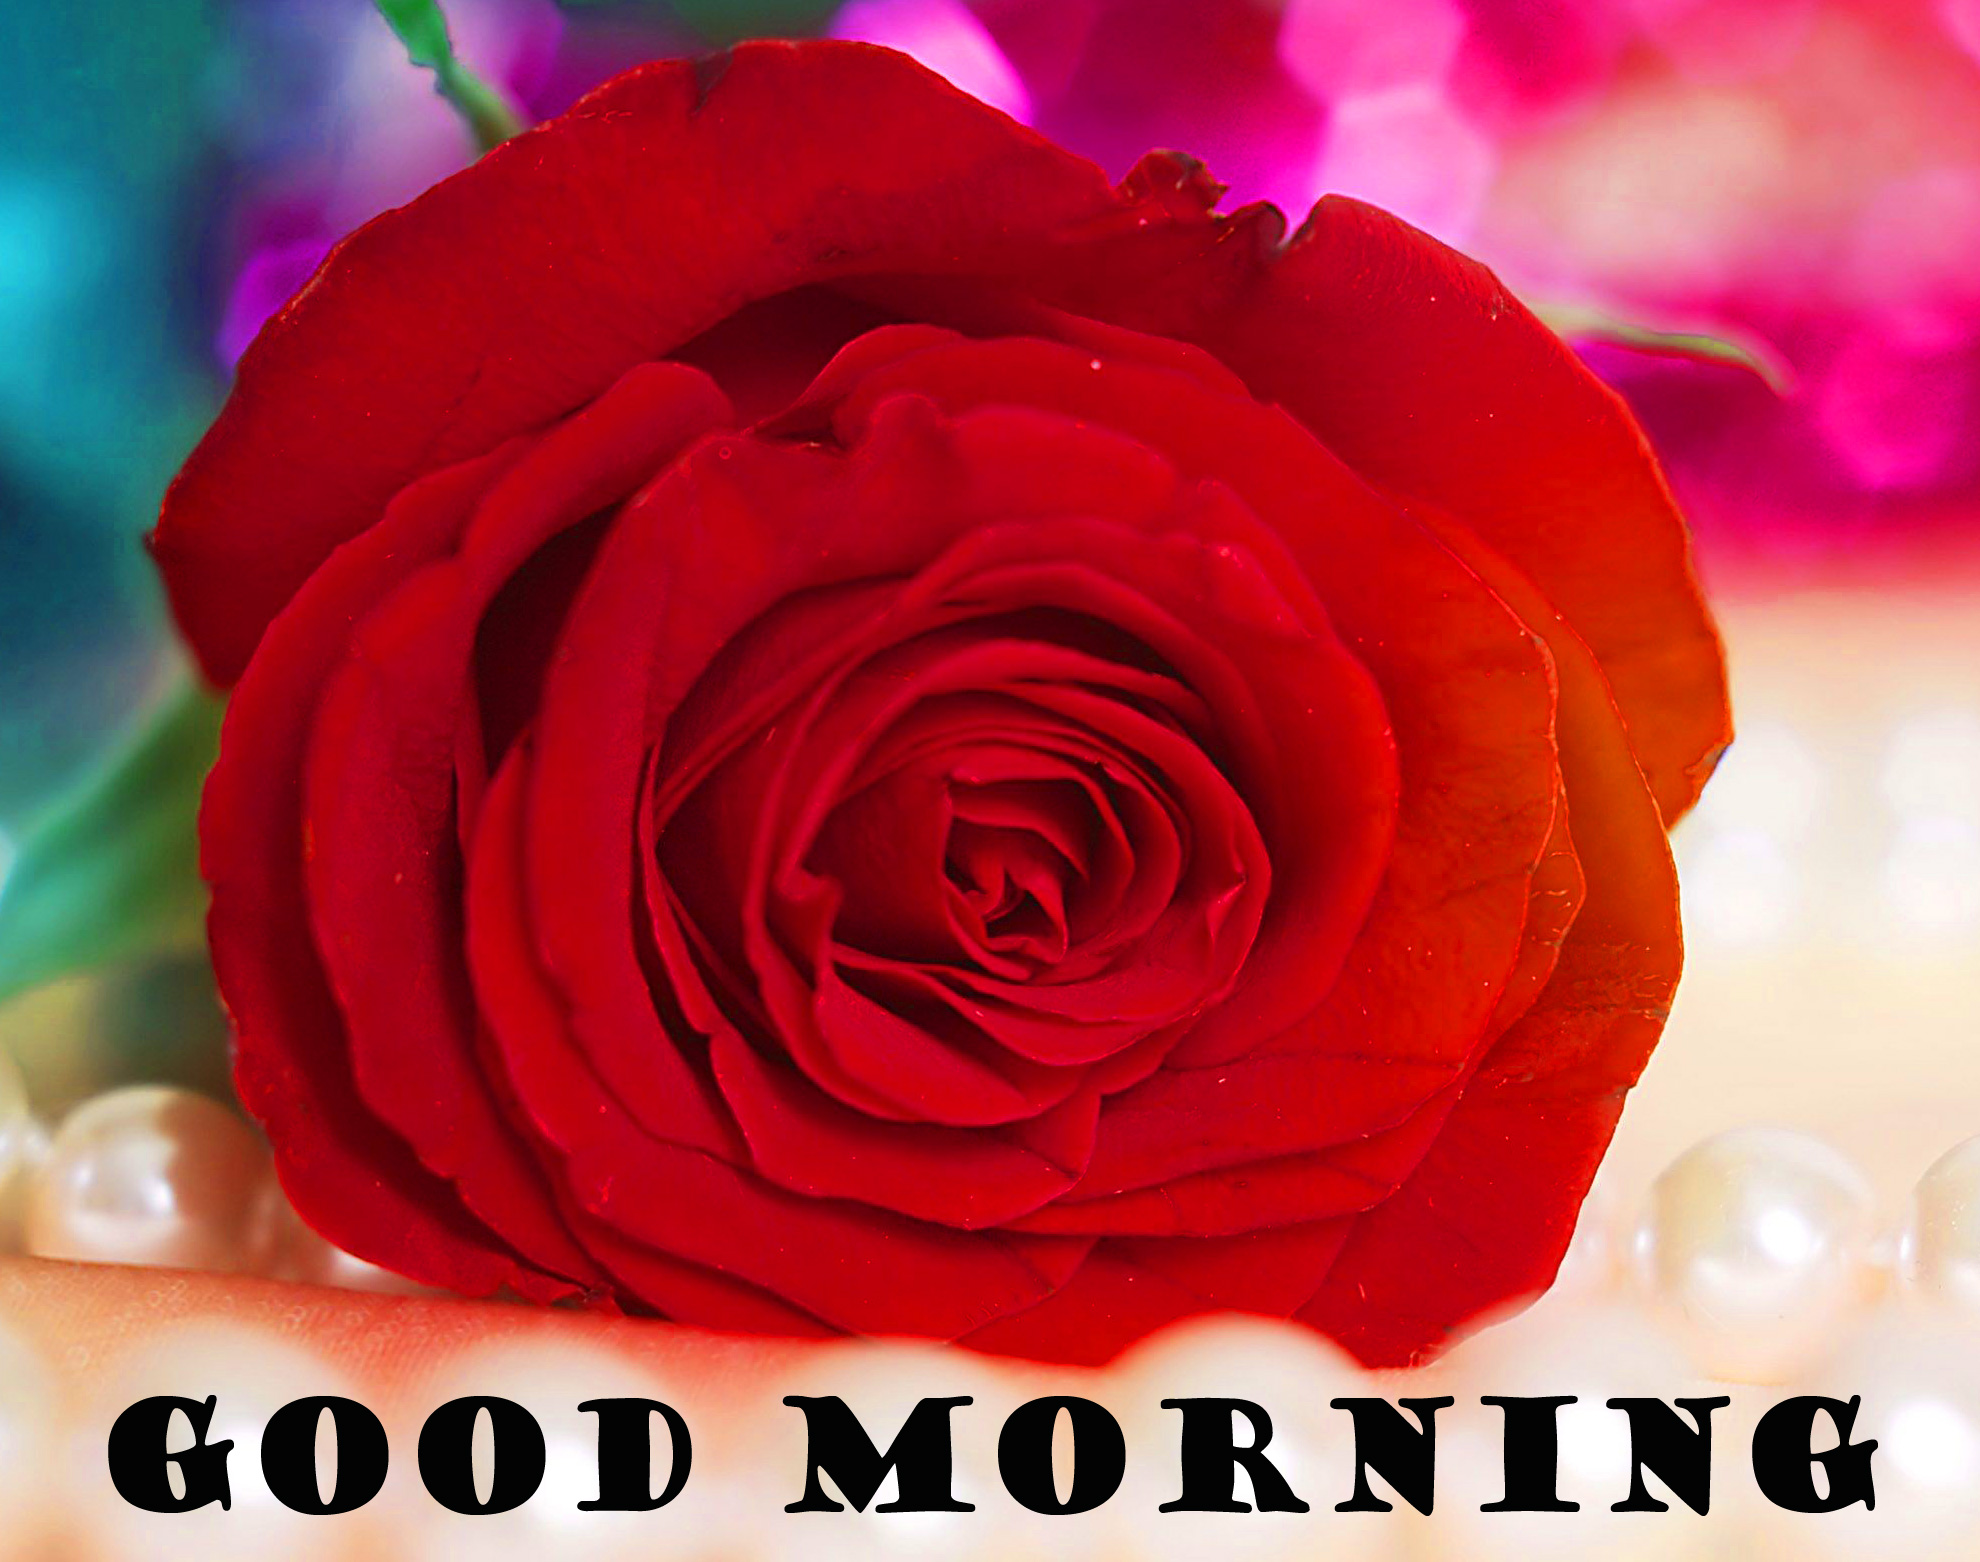 Good Morning Red Rose Pictures Images Photo Download